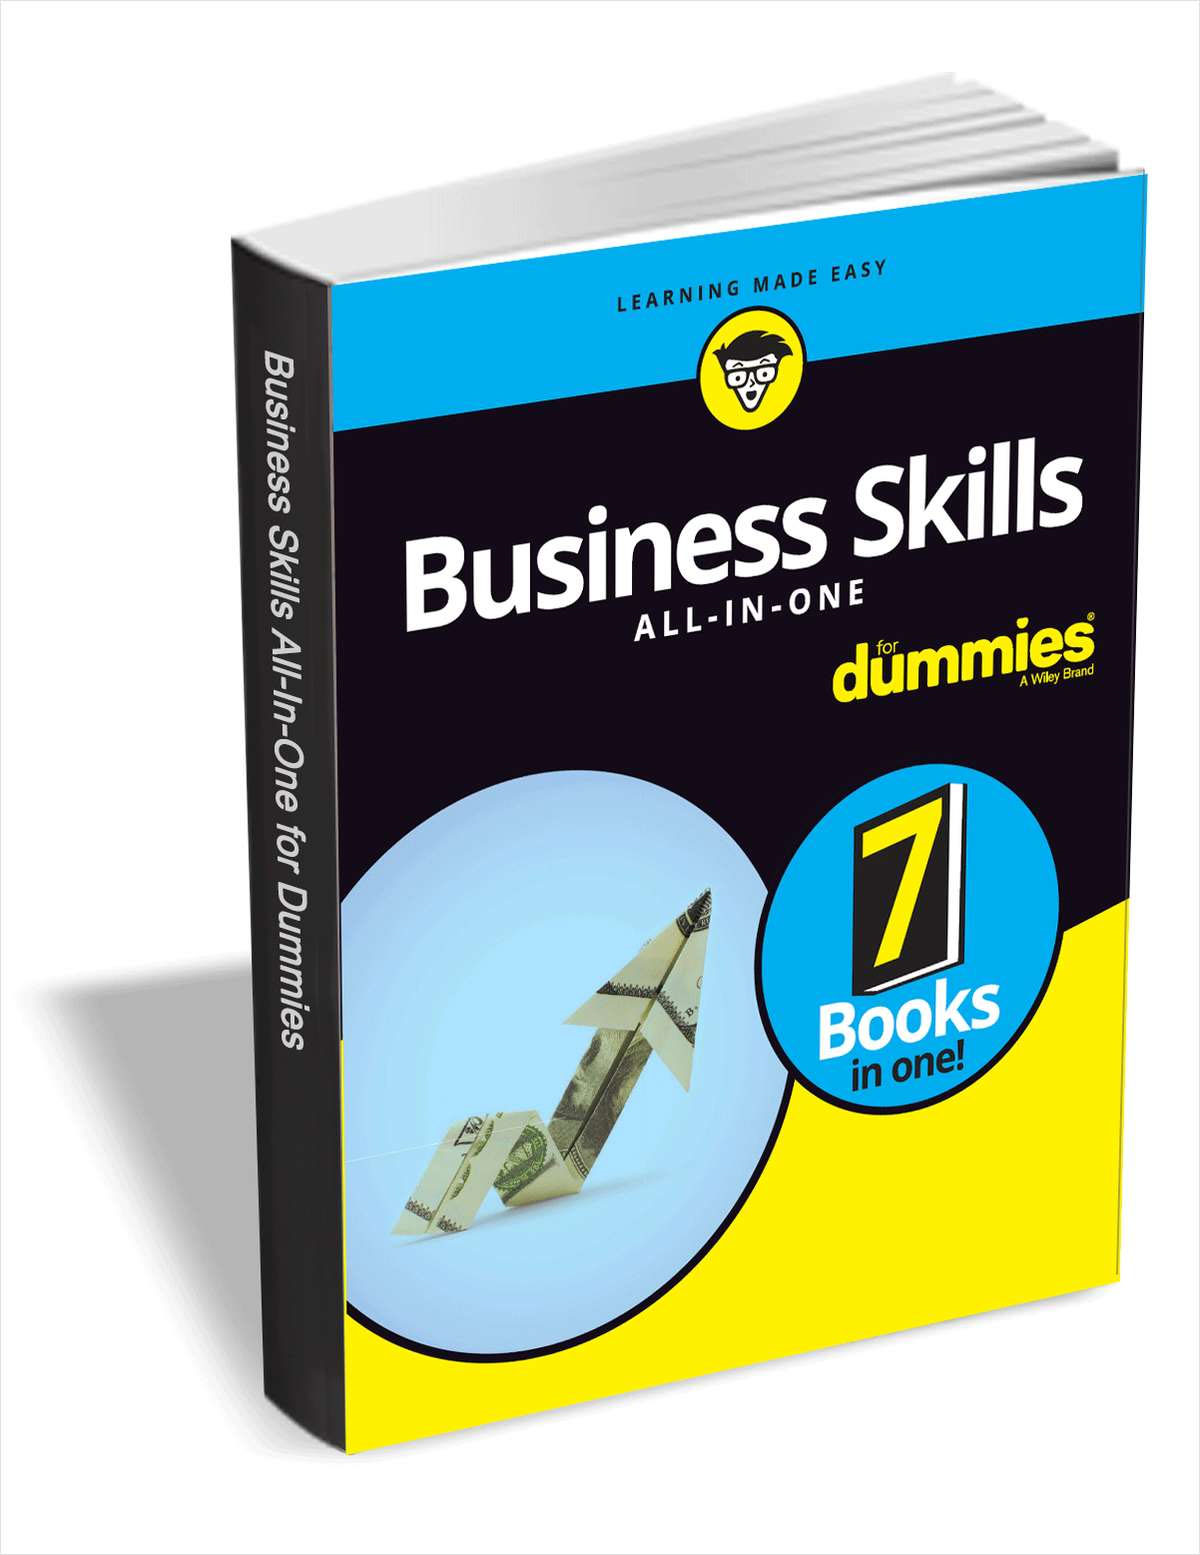 Business Skills All-in-One For Dummies ($22.99 Value) FREE for a Limited Time Screenshot